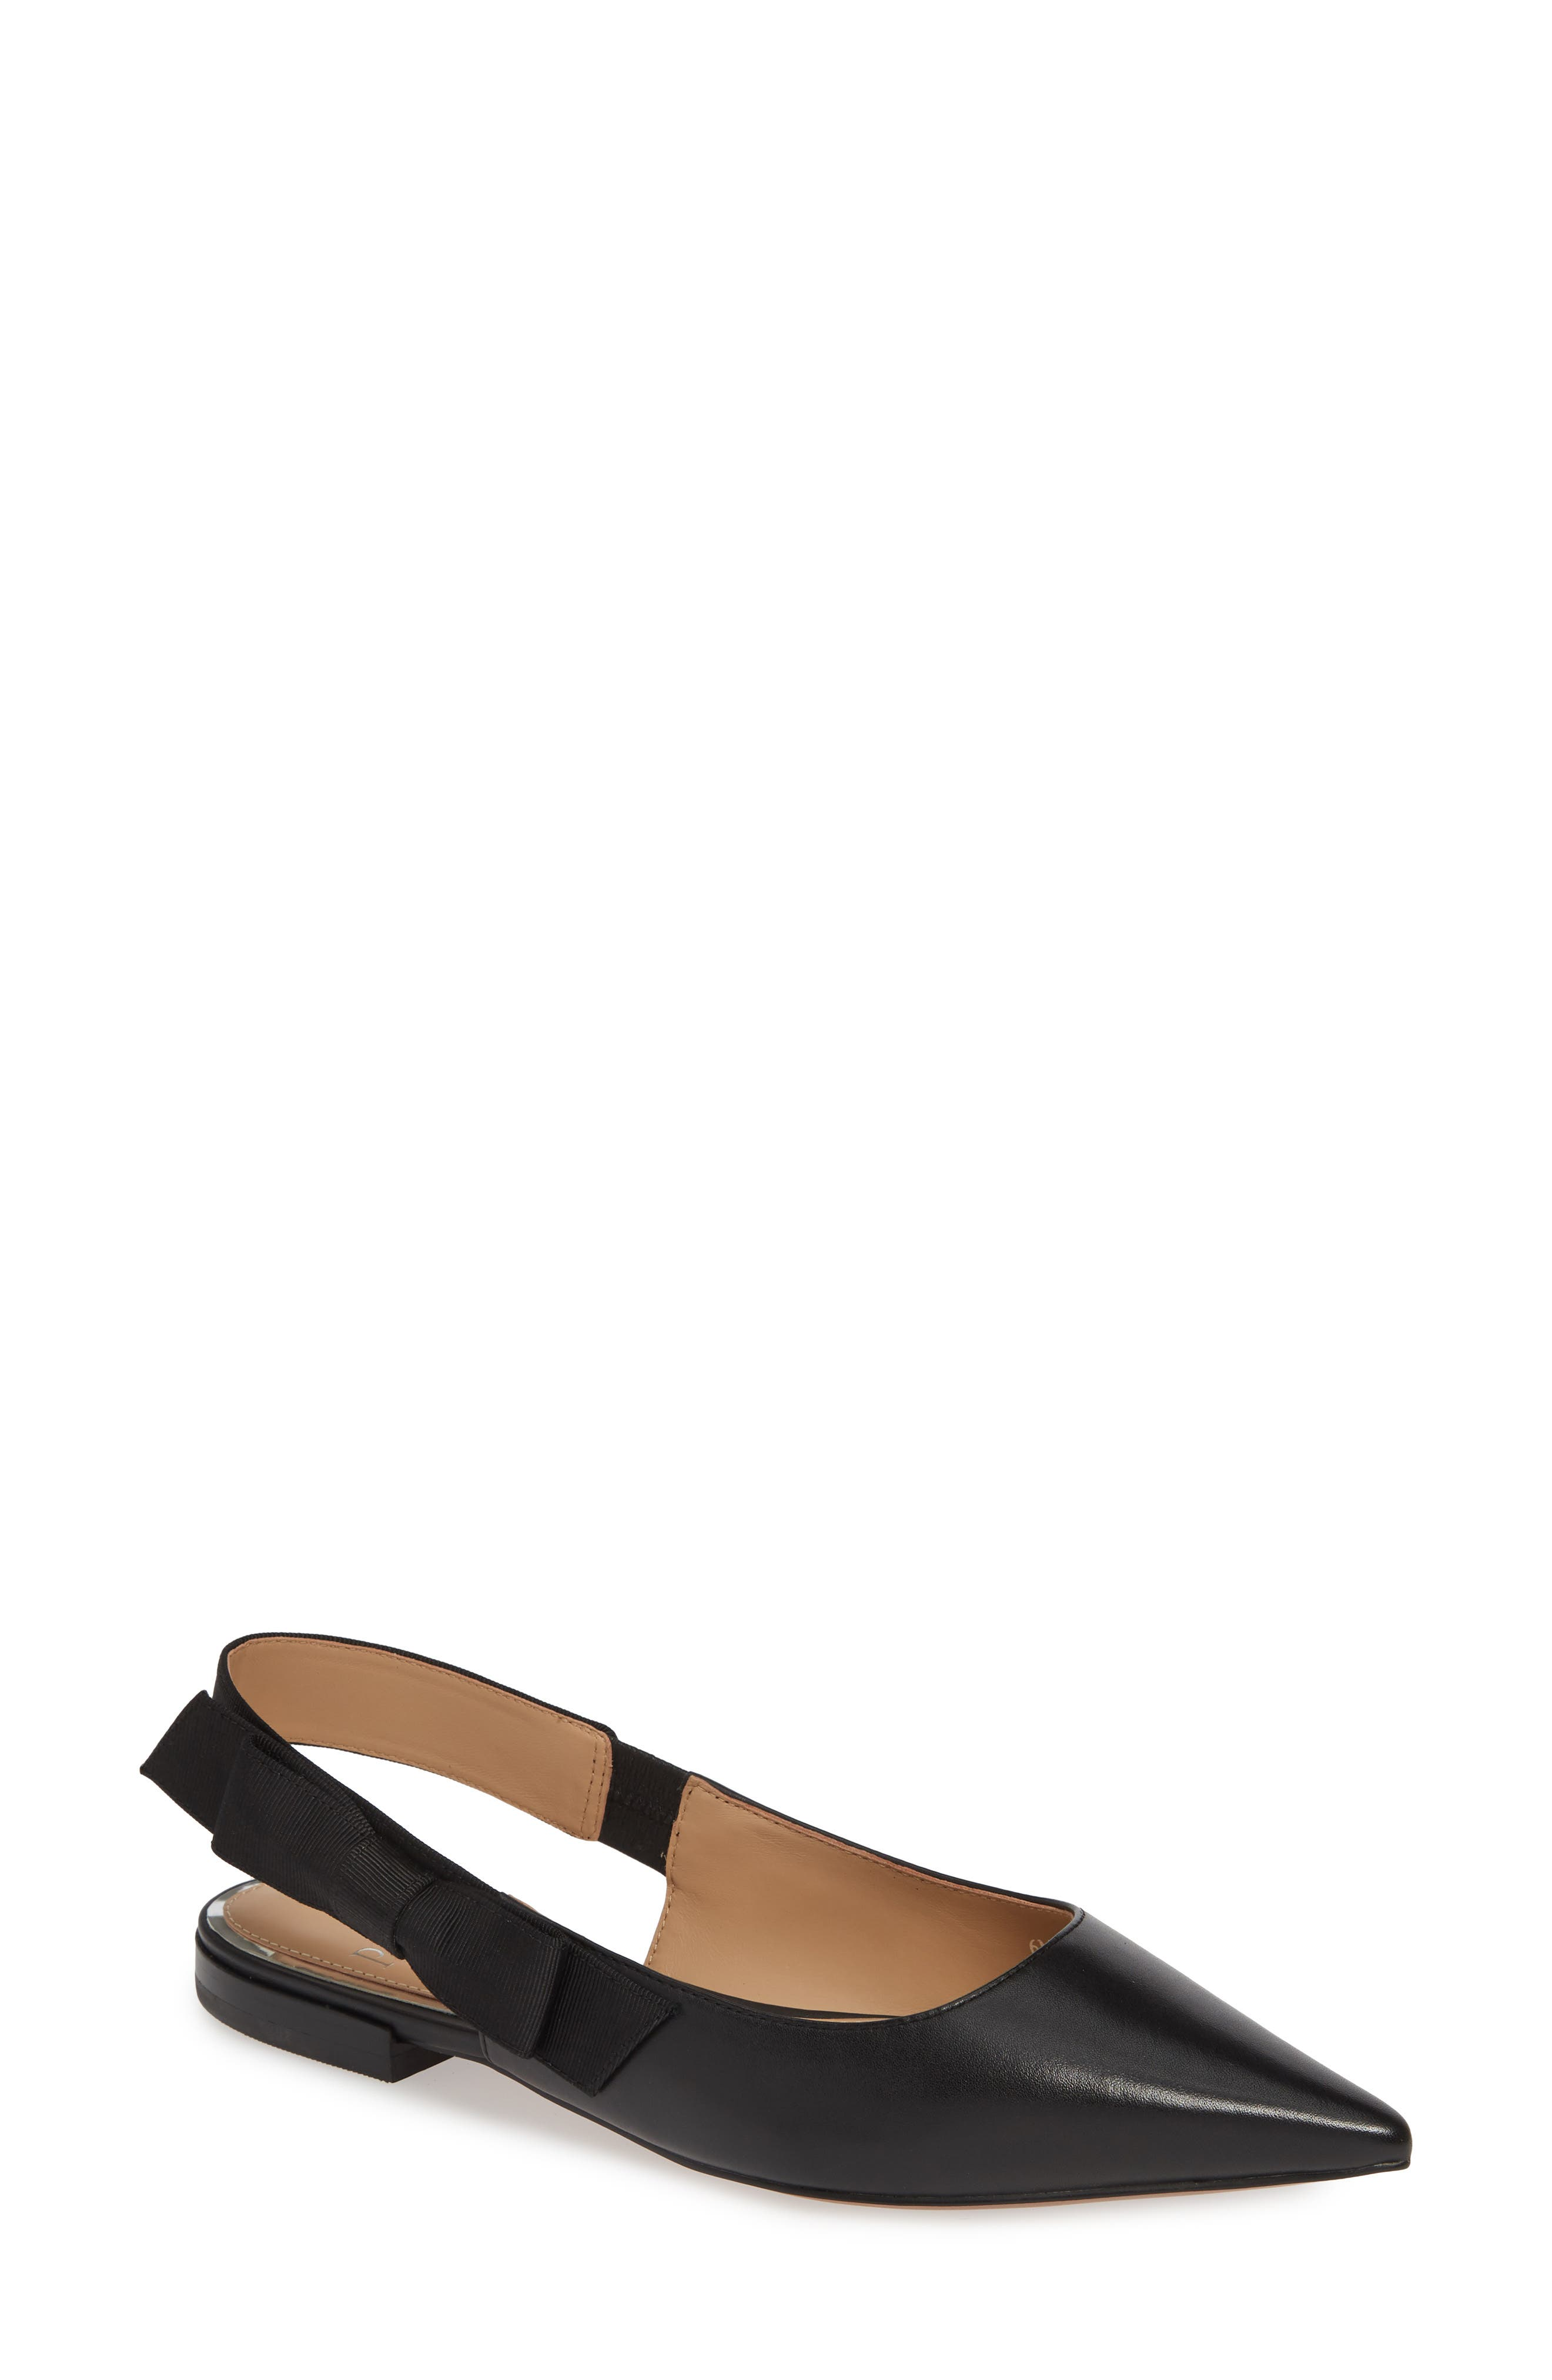 LINEA PAOLO Darcy Bow Slingback Flat, Main, color, BLACK LEATHER